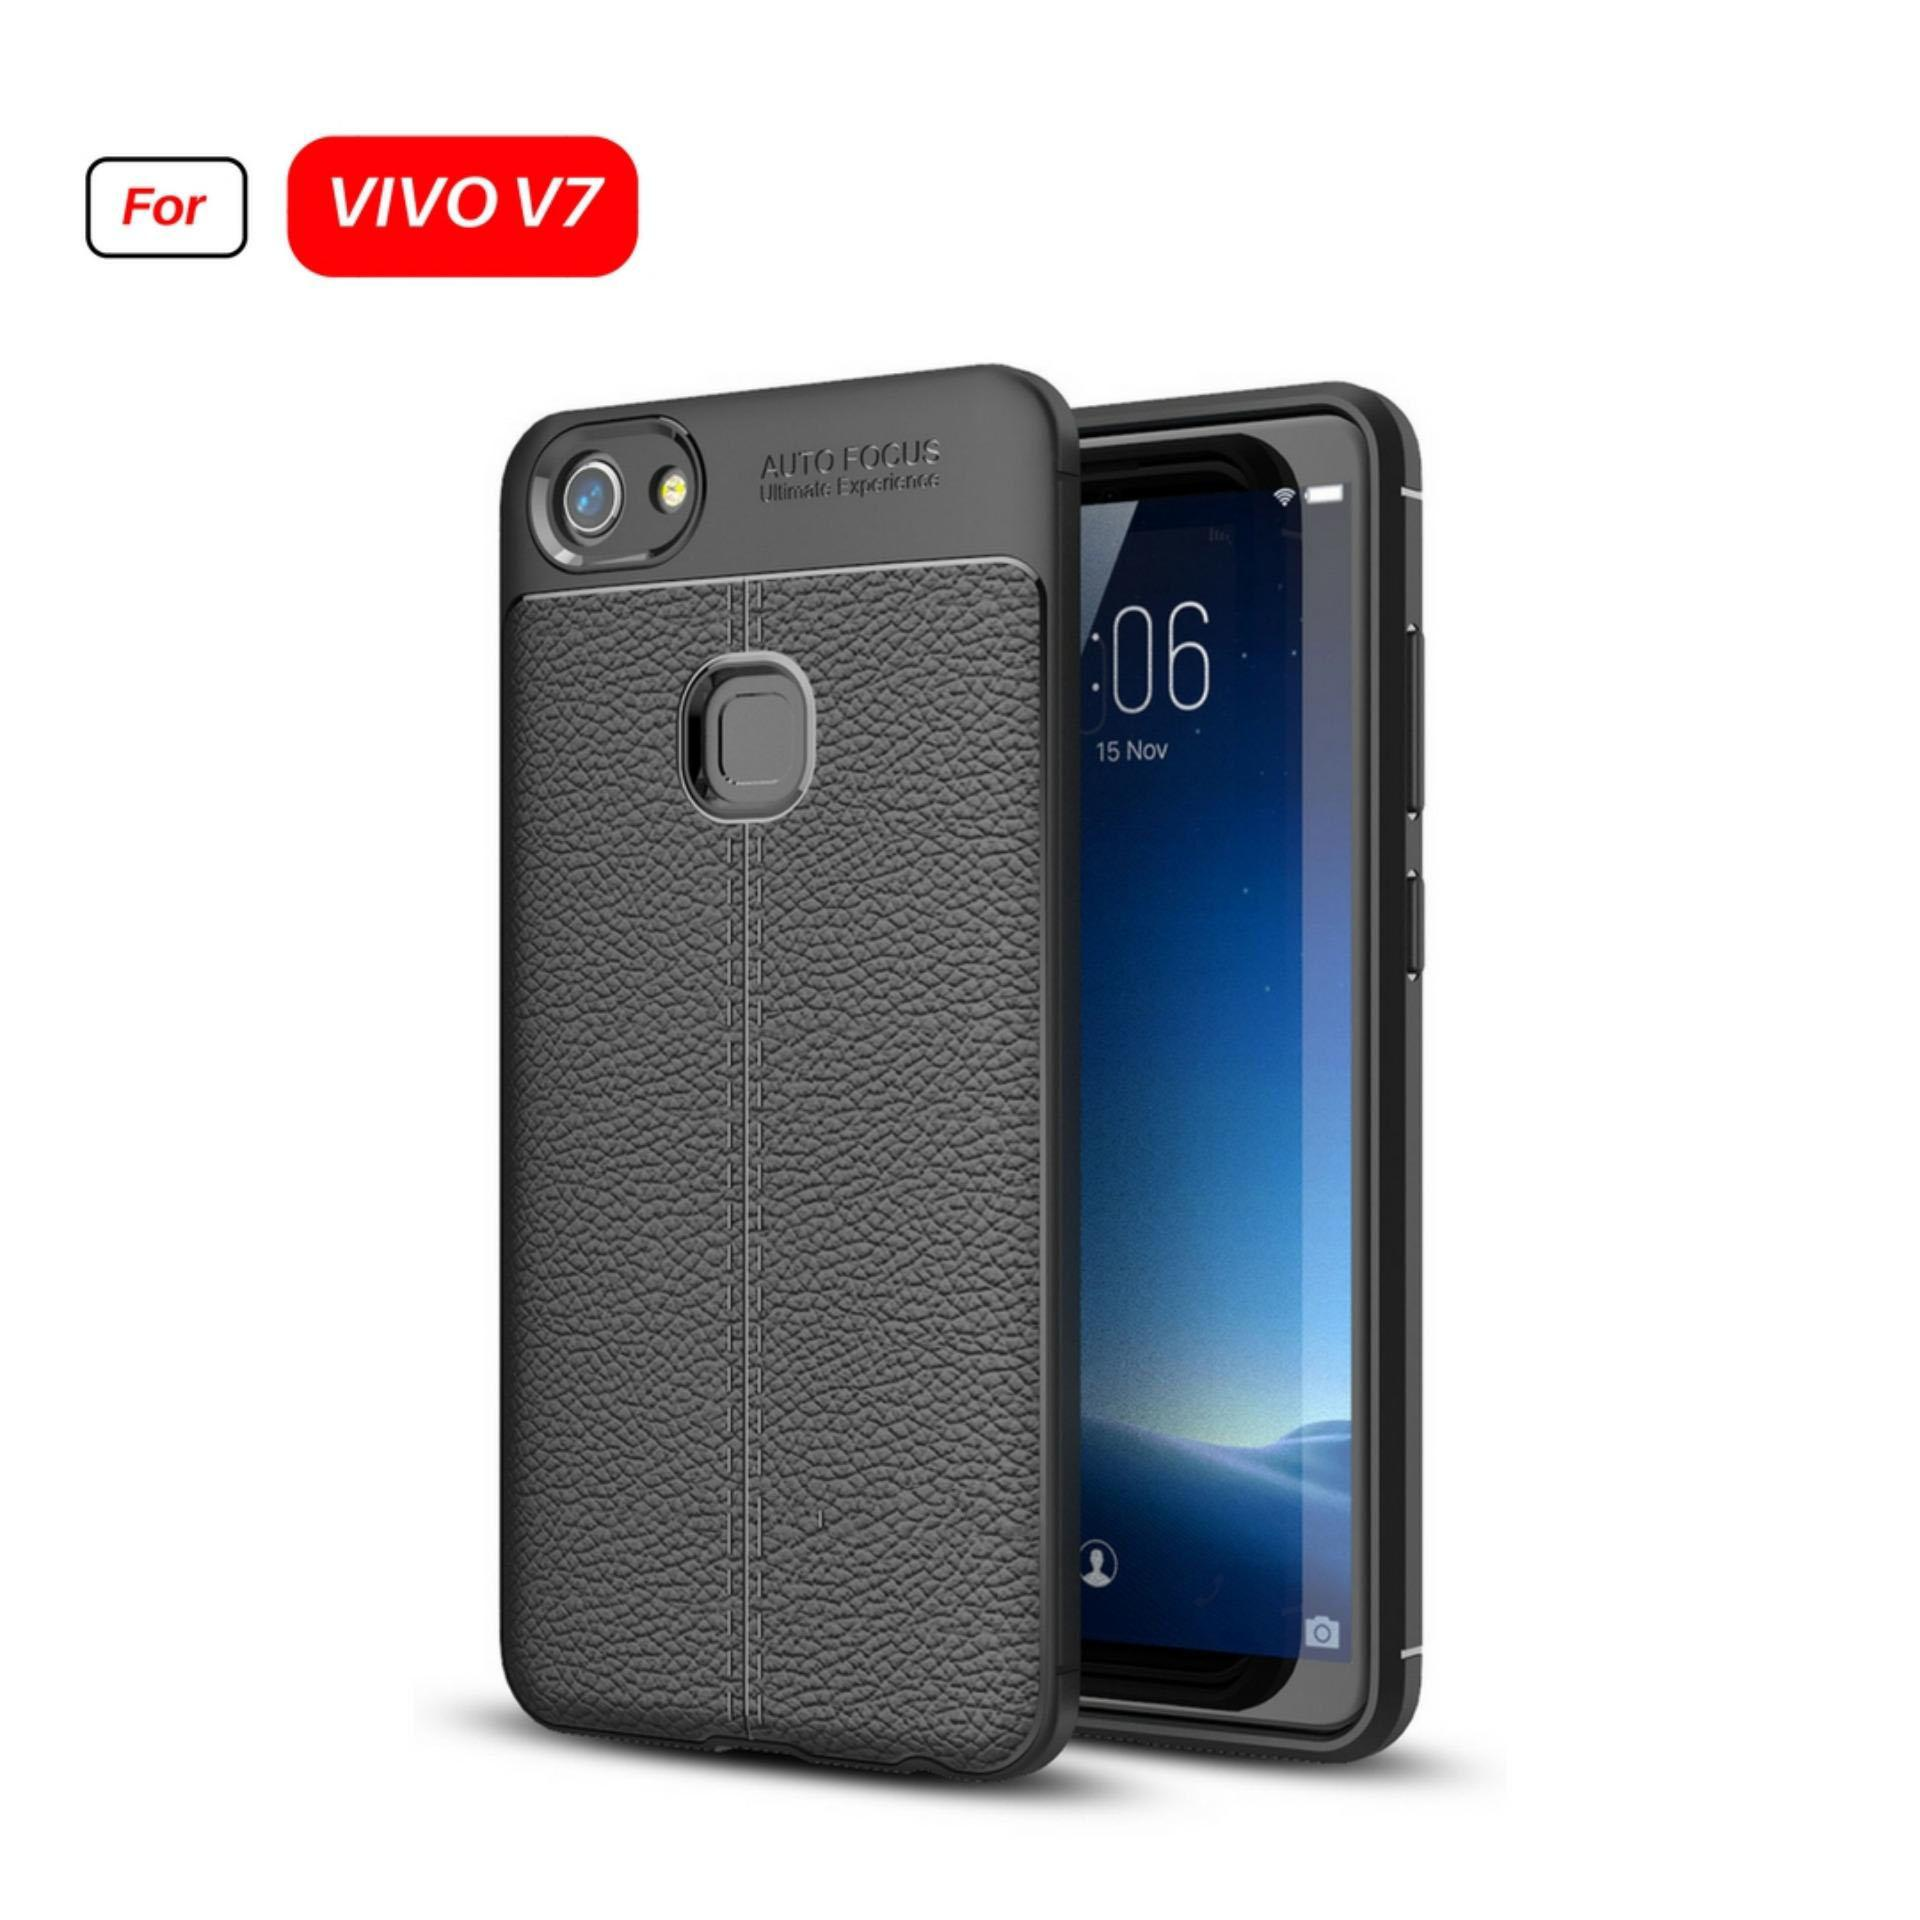 Jak Shop Leather Softcase For VIVO V7 - Black